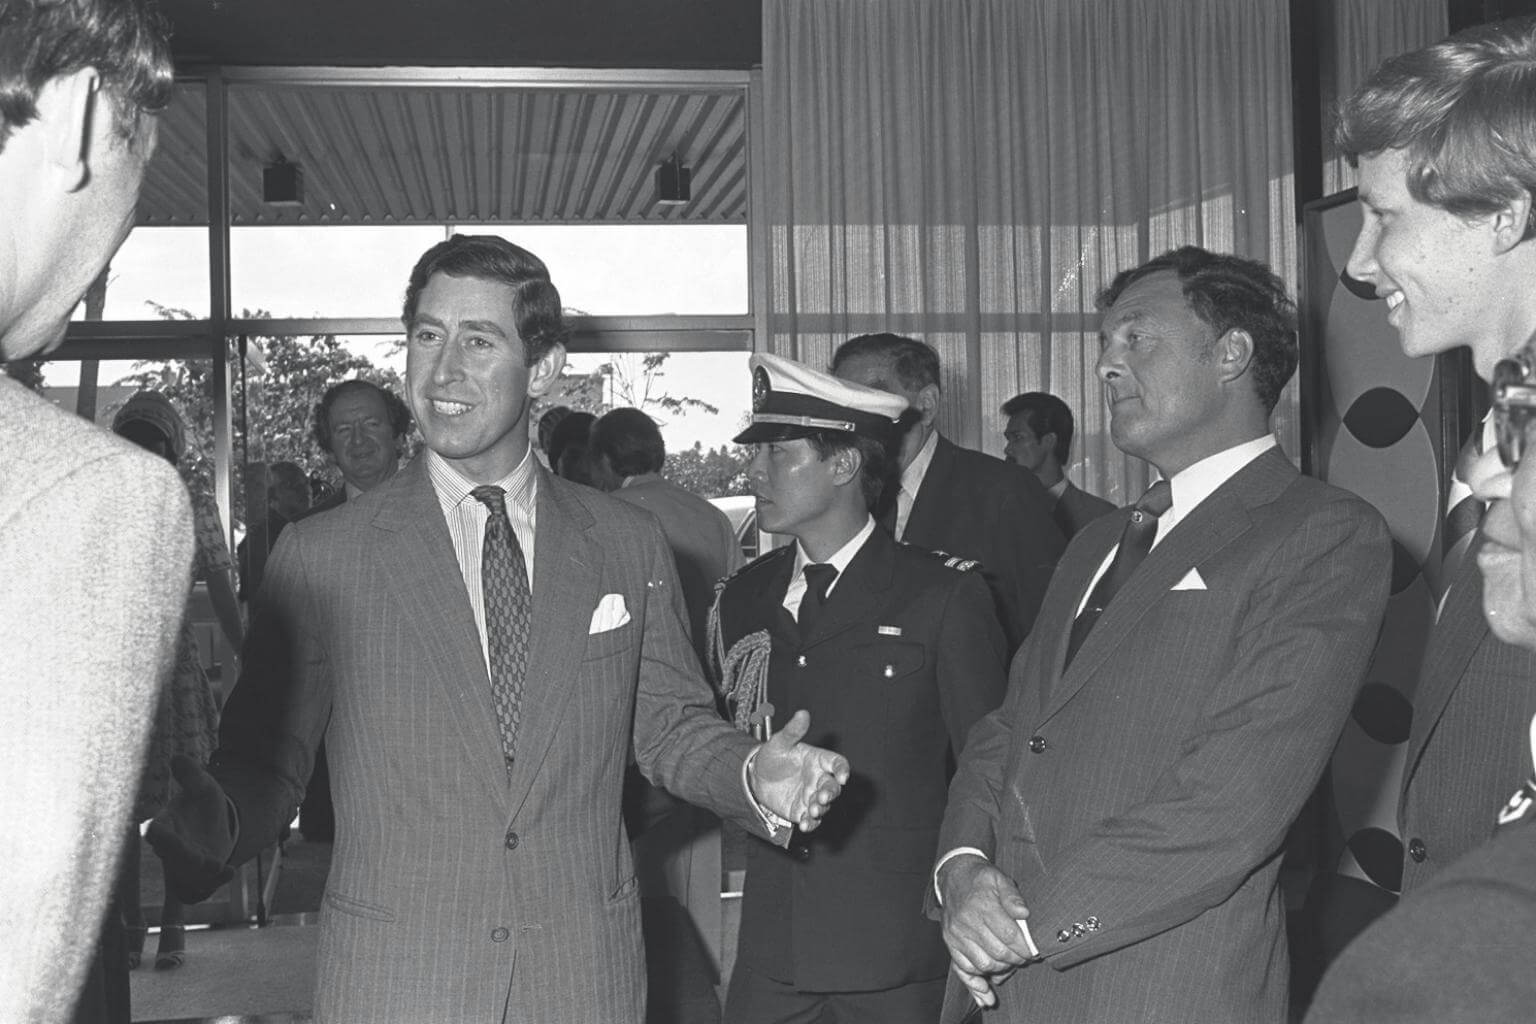 Prince Charles during his first visit to Singapore in 1979.